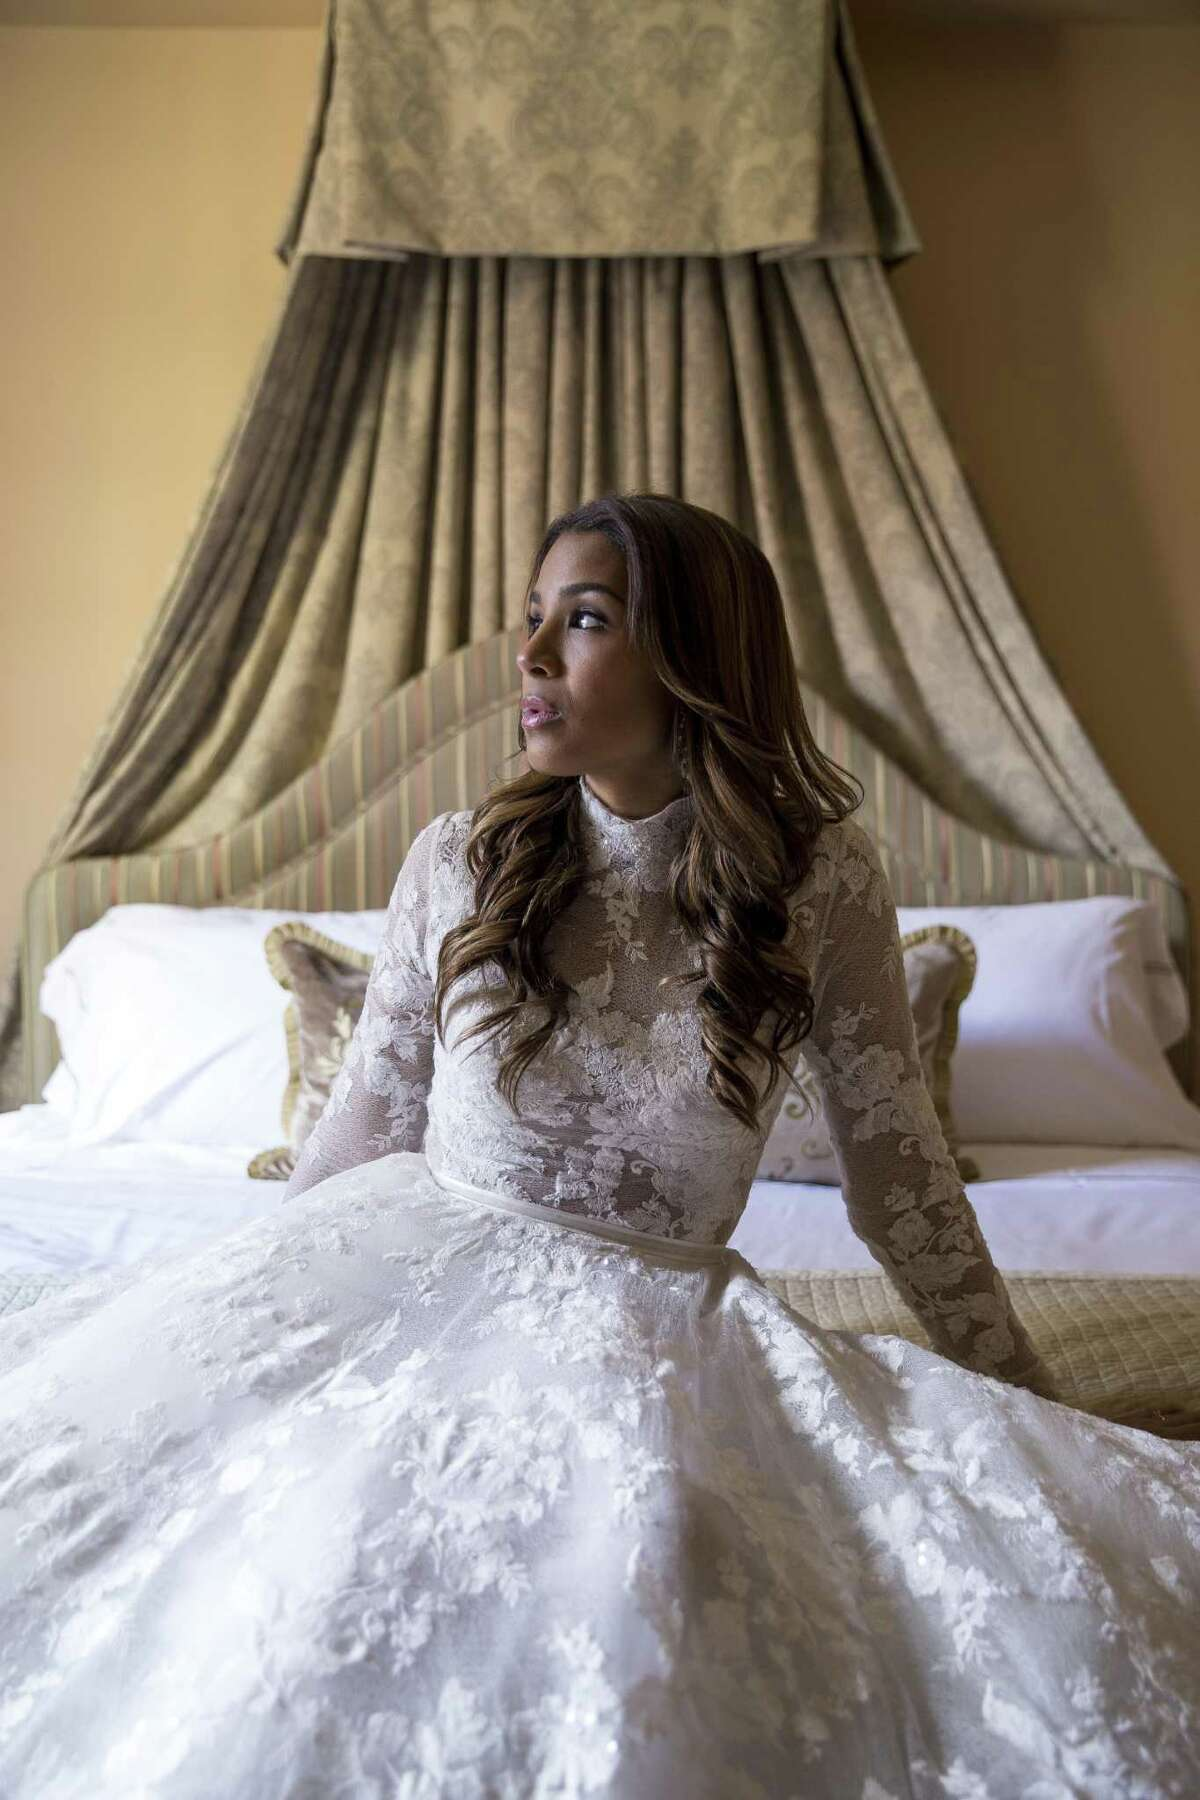 Leah Cast models an Isabelle Armstrong gown from Ivory Bridal Atelier and jewelry from I.W. Marks at Hotel Granduca.